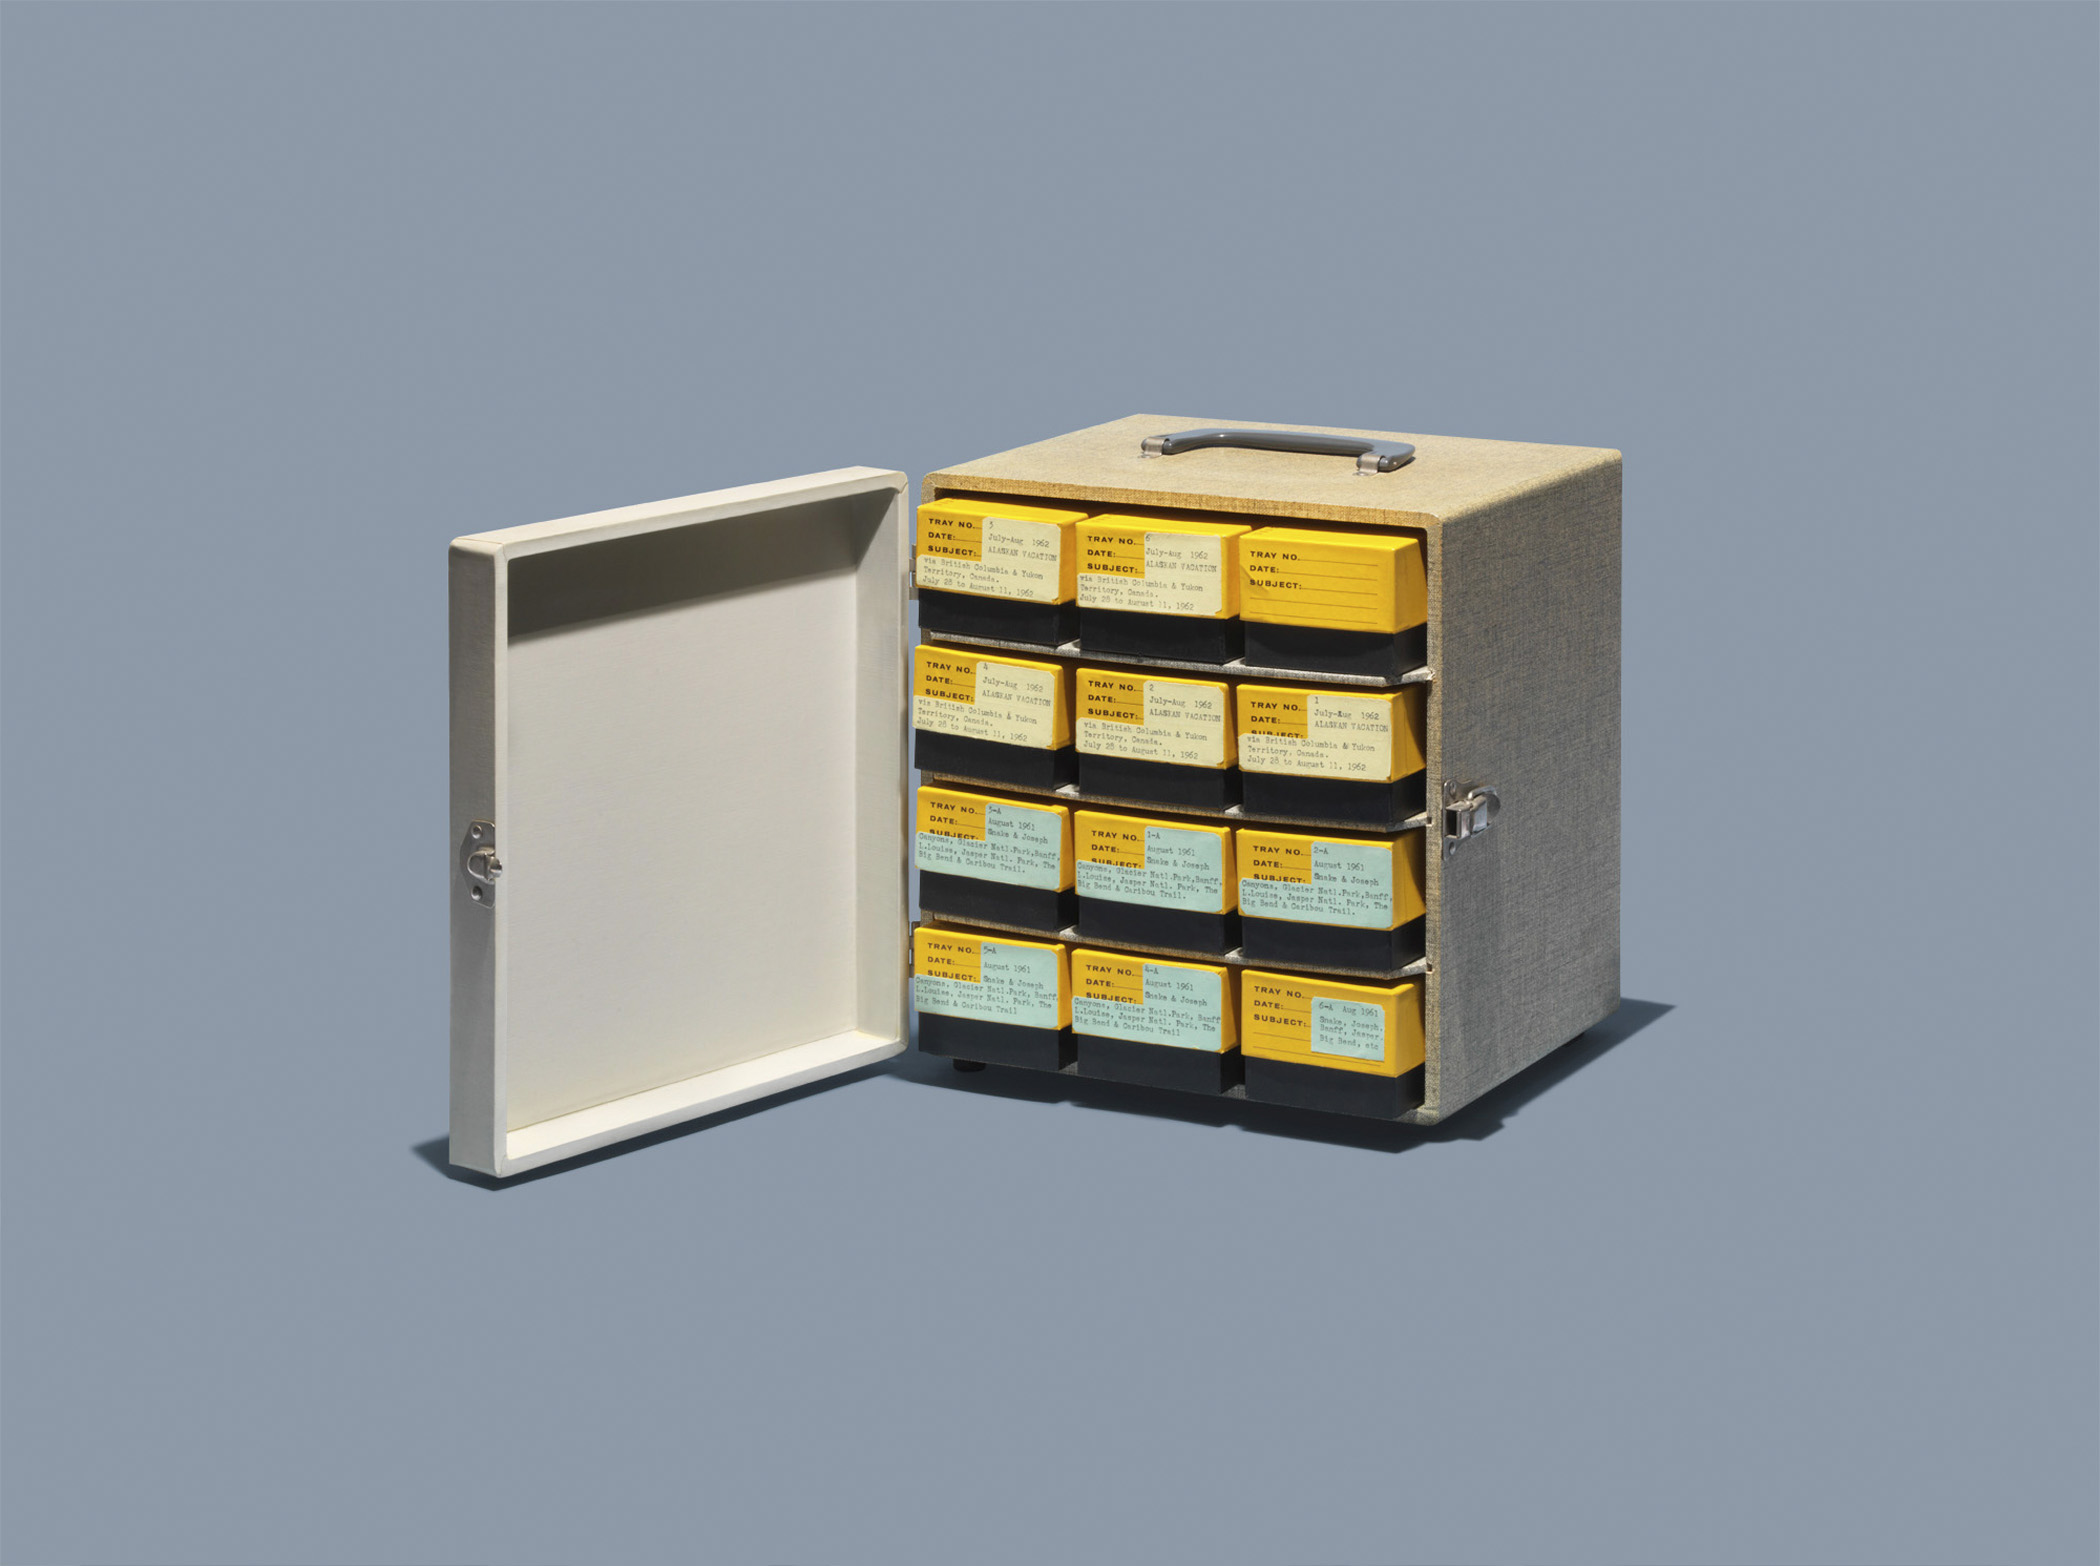 """Kodak 35mm slide caddy. List Price of similar 1951 slide case by Barnett &amp; Jaffe Model SV-3N: $11.25, per <a href=""""http://books.google.com/books?id=f10zAQAAMAAJ&amp;pg=PA137&amp;dq=Barnett+%26+Jaffe++slide+storage+case&amp;hl=en&amp;sa=X&amp;ei=VGscVOioAcT9yQSNv4GQDA&amp;ved=0CDIQ6AEwAQ#v=onepage&amp;q=Barnett%20%26%20Jaffe%20%20slide%20storage%20case&amp;f=false"""" title=""""Popular Photography"""" target=""""_blank"""">Popular Photography</a>.  <strong>Today's equivalent:</strong> Phase One Media Pro. List Price: $445, available on <a href=""""http://www.phaseone.com/Online-Store/PurchaseDetailsPage.aspx?mediapro=buy"""" title=""""Phase One Media Pro"""" target=""""_blank"""">PhaseOne.com</a>."""